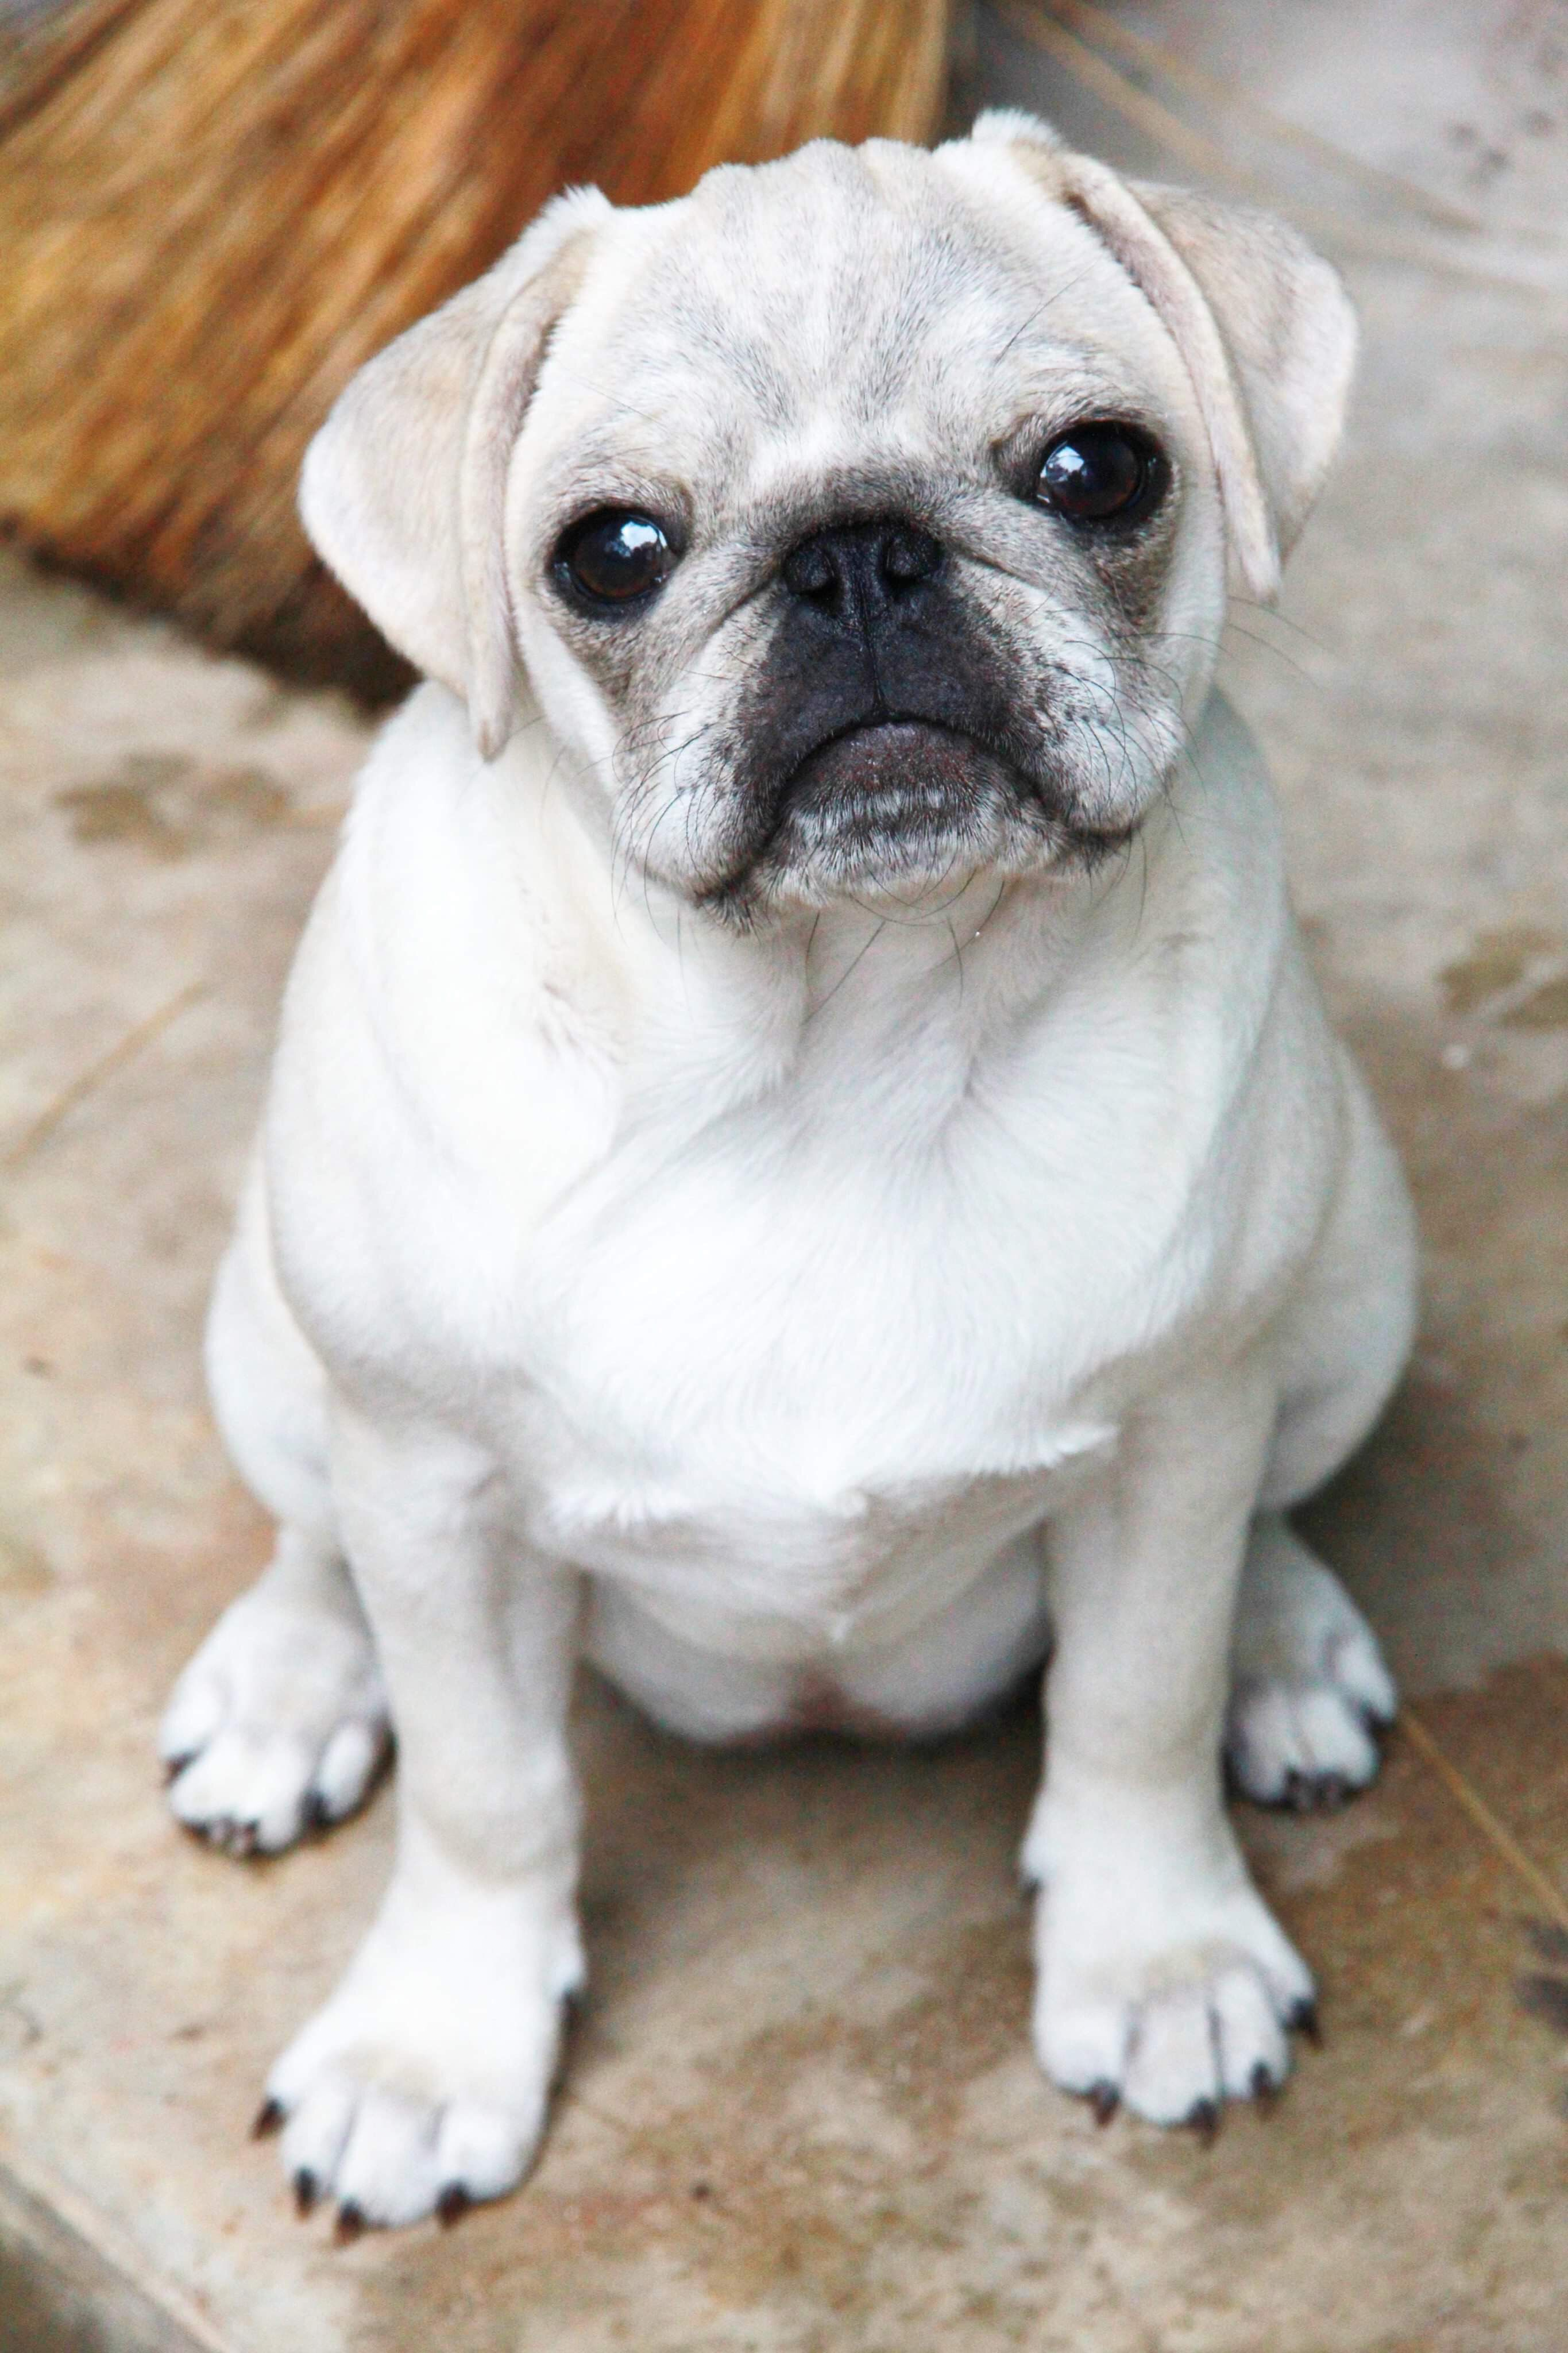 Pin By Nana Covington On Pugs Pugs And More Pugs With Images